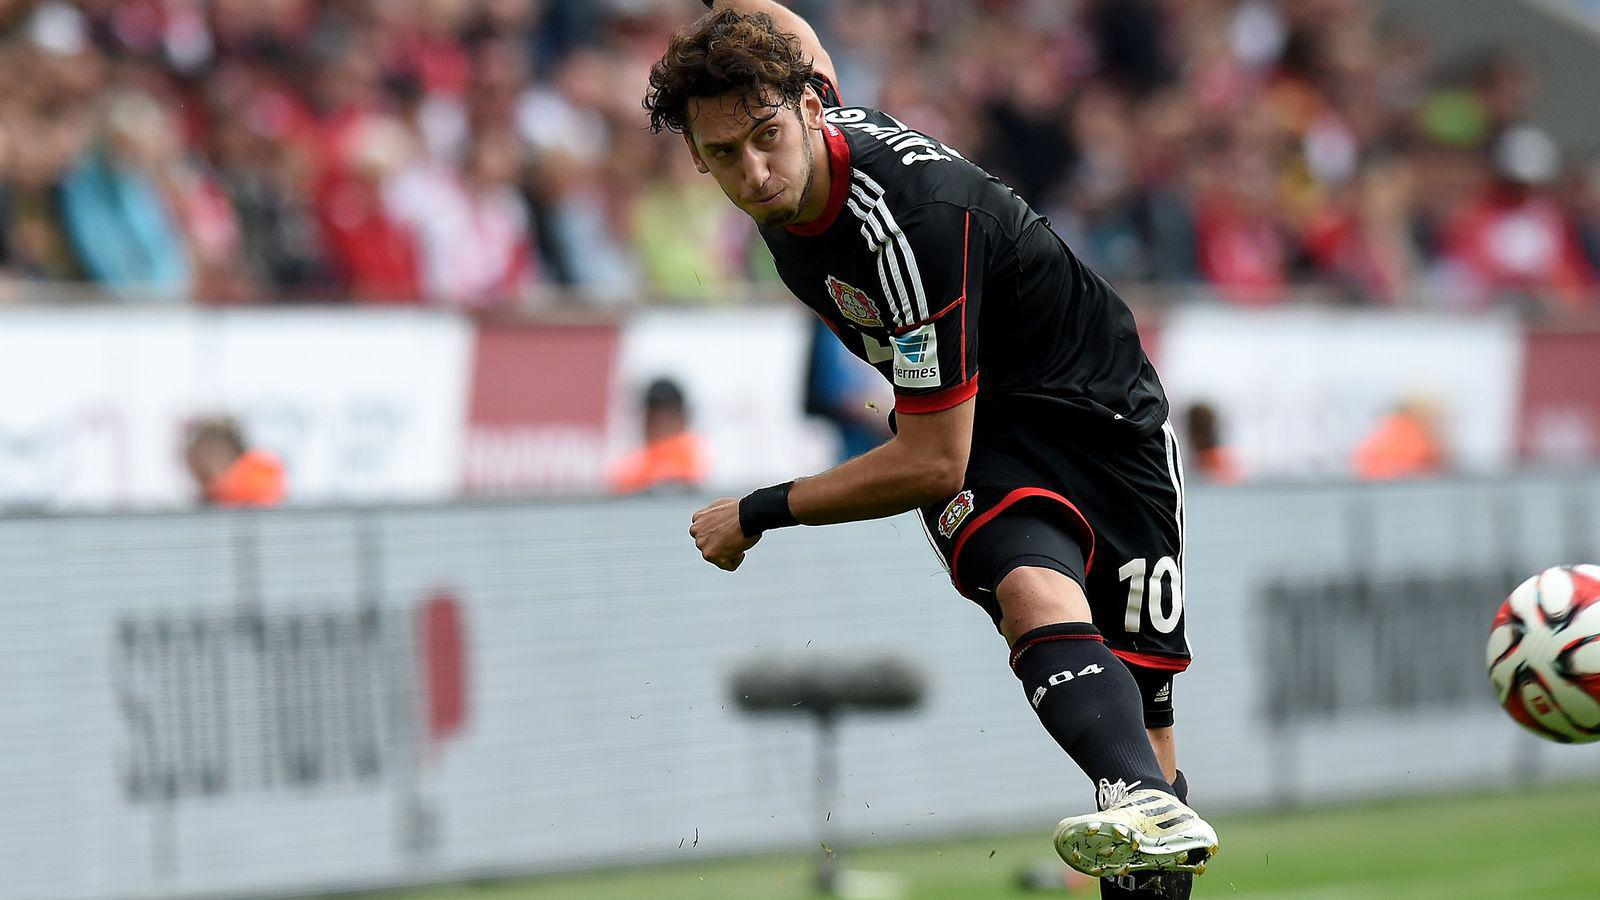 d 51369 leverkusen lazio - photo#15